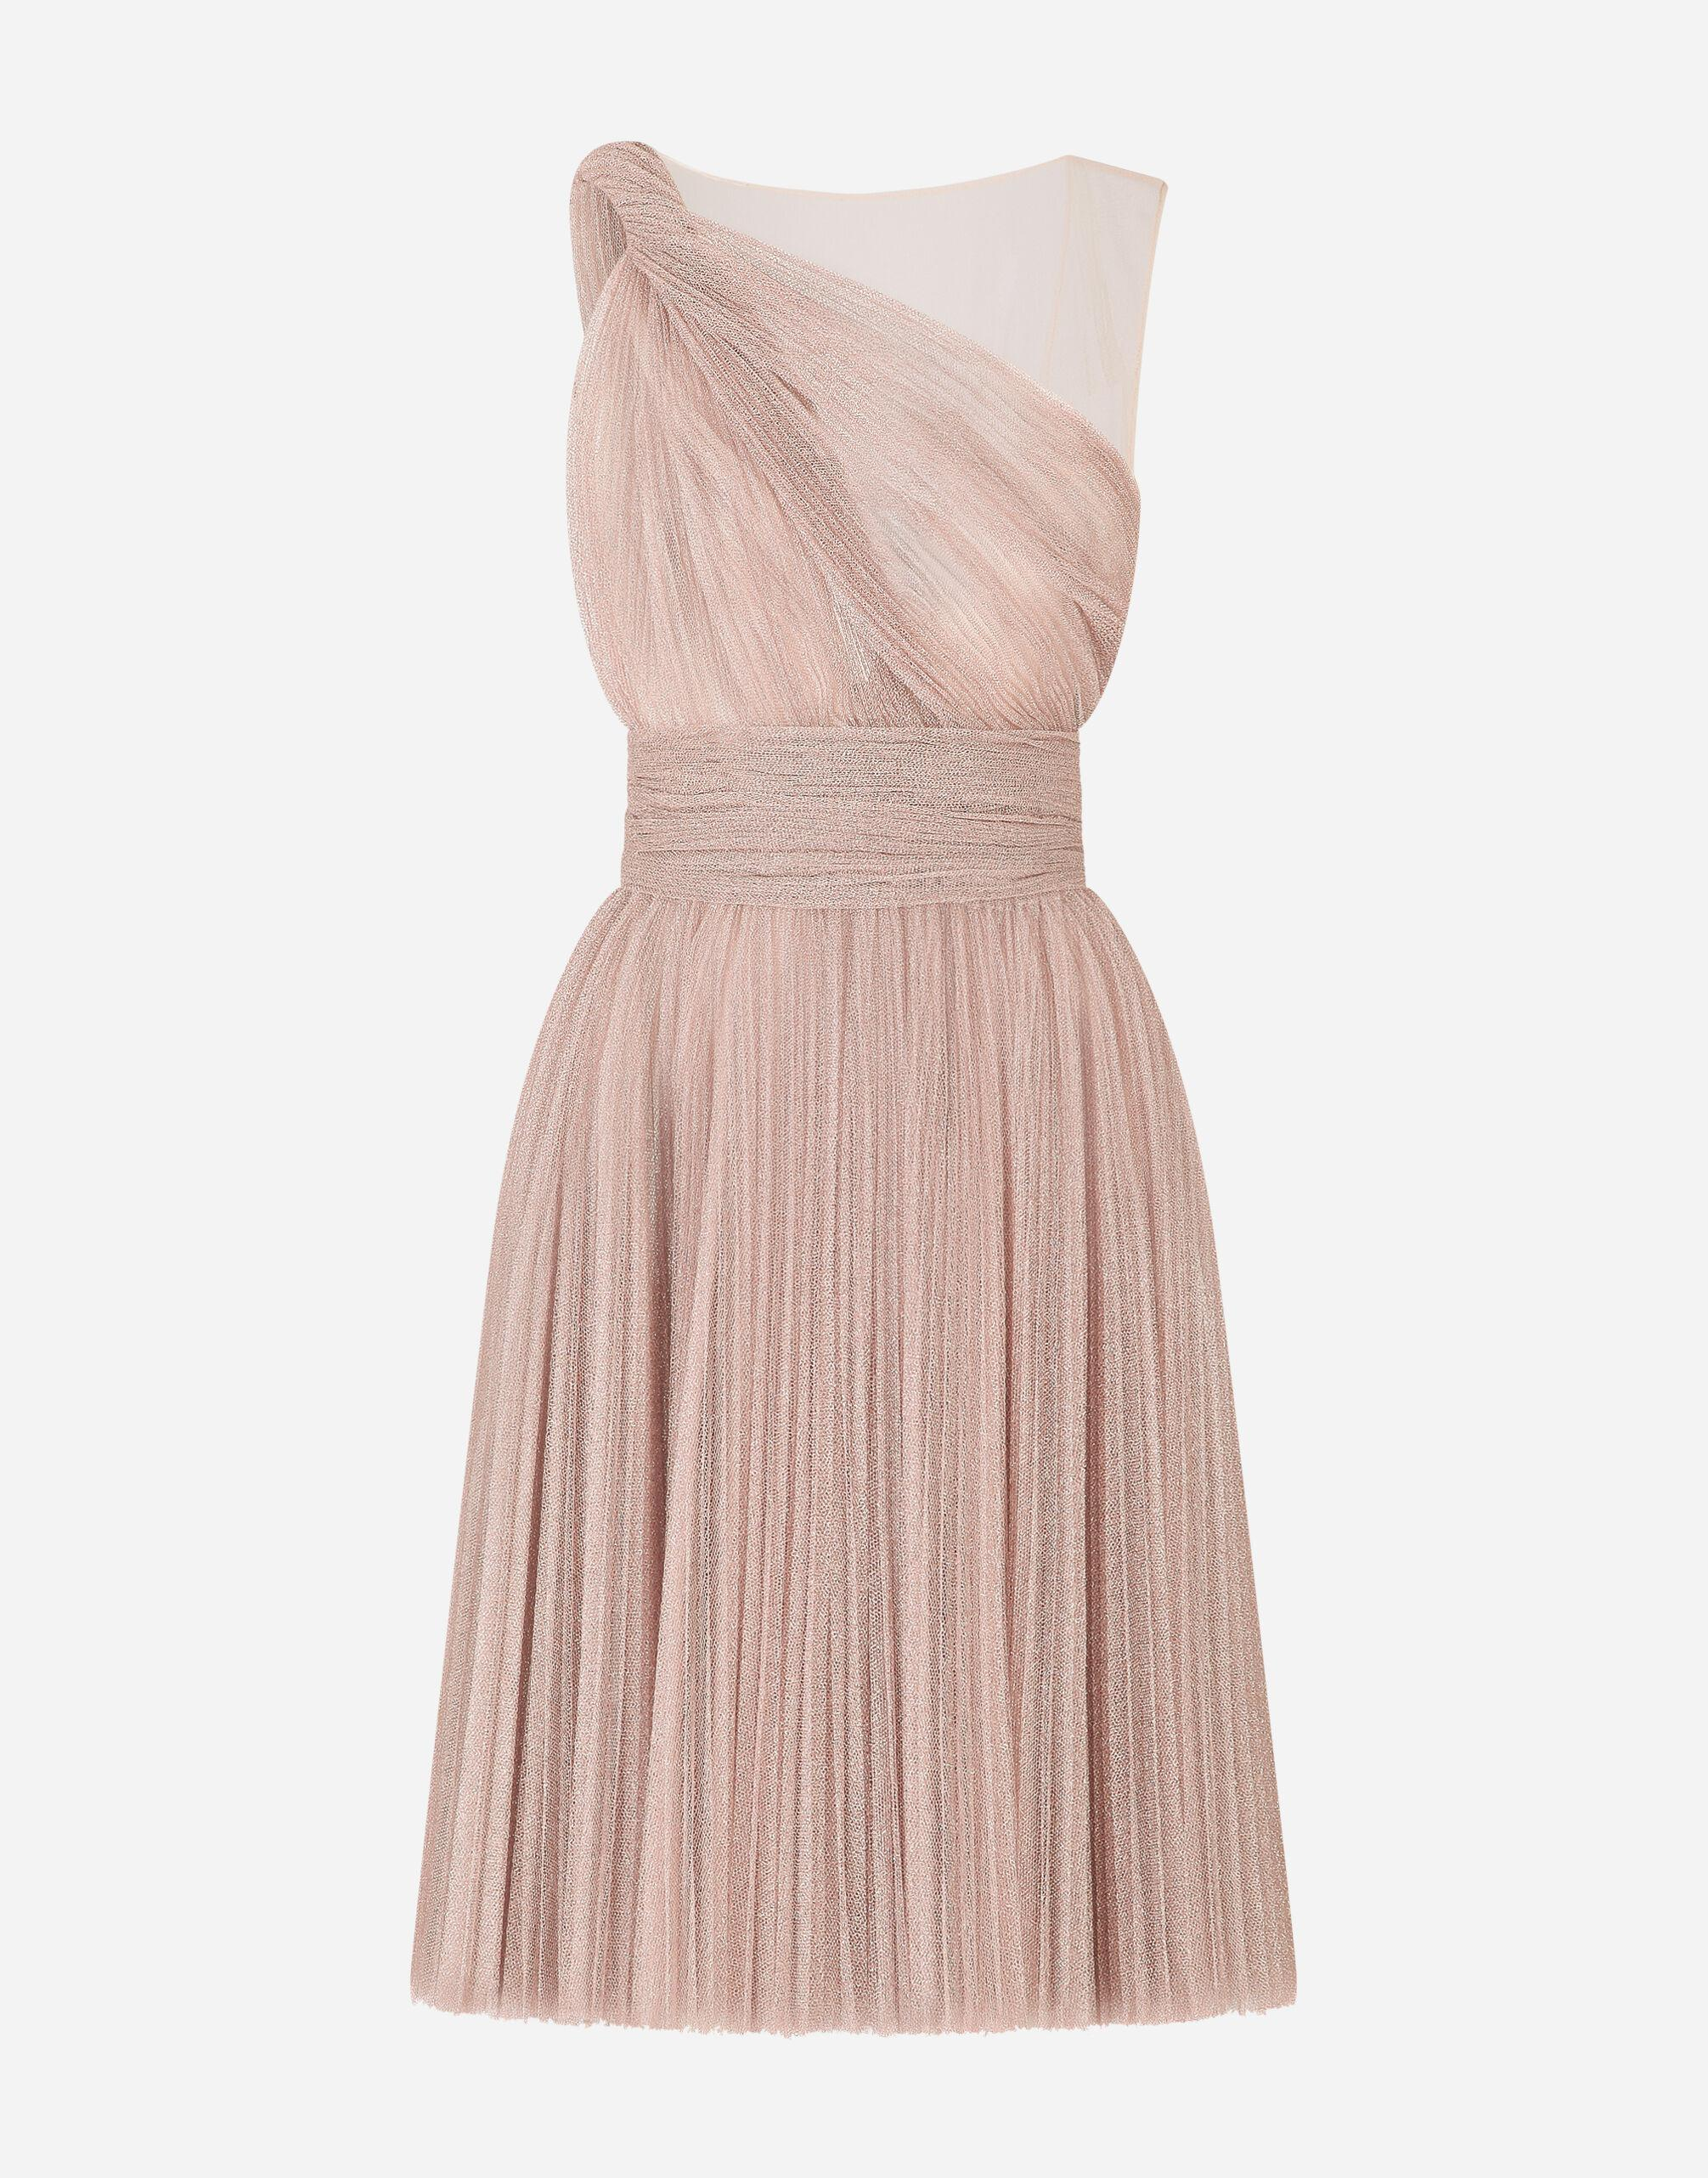 One-shoulder midi dress in pleated lamé tulle 2